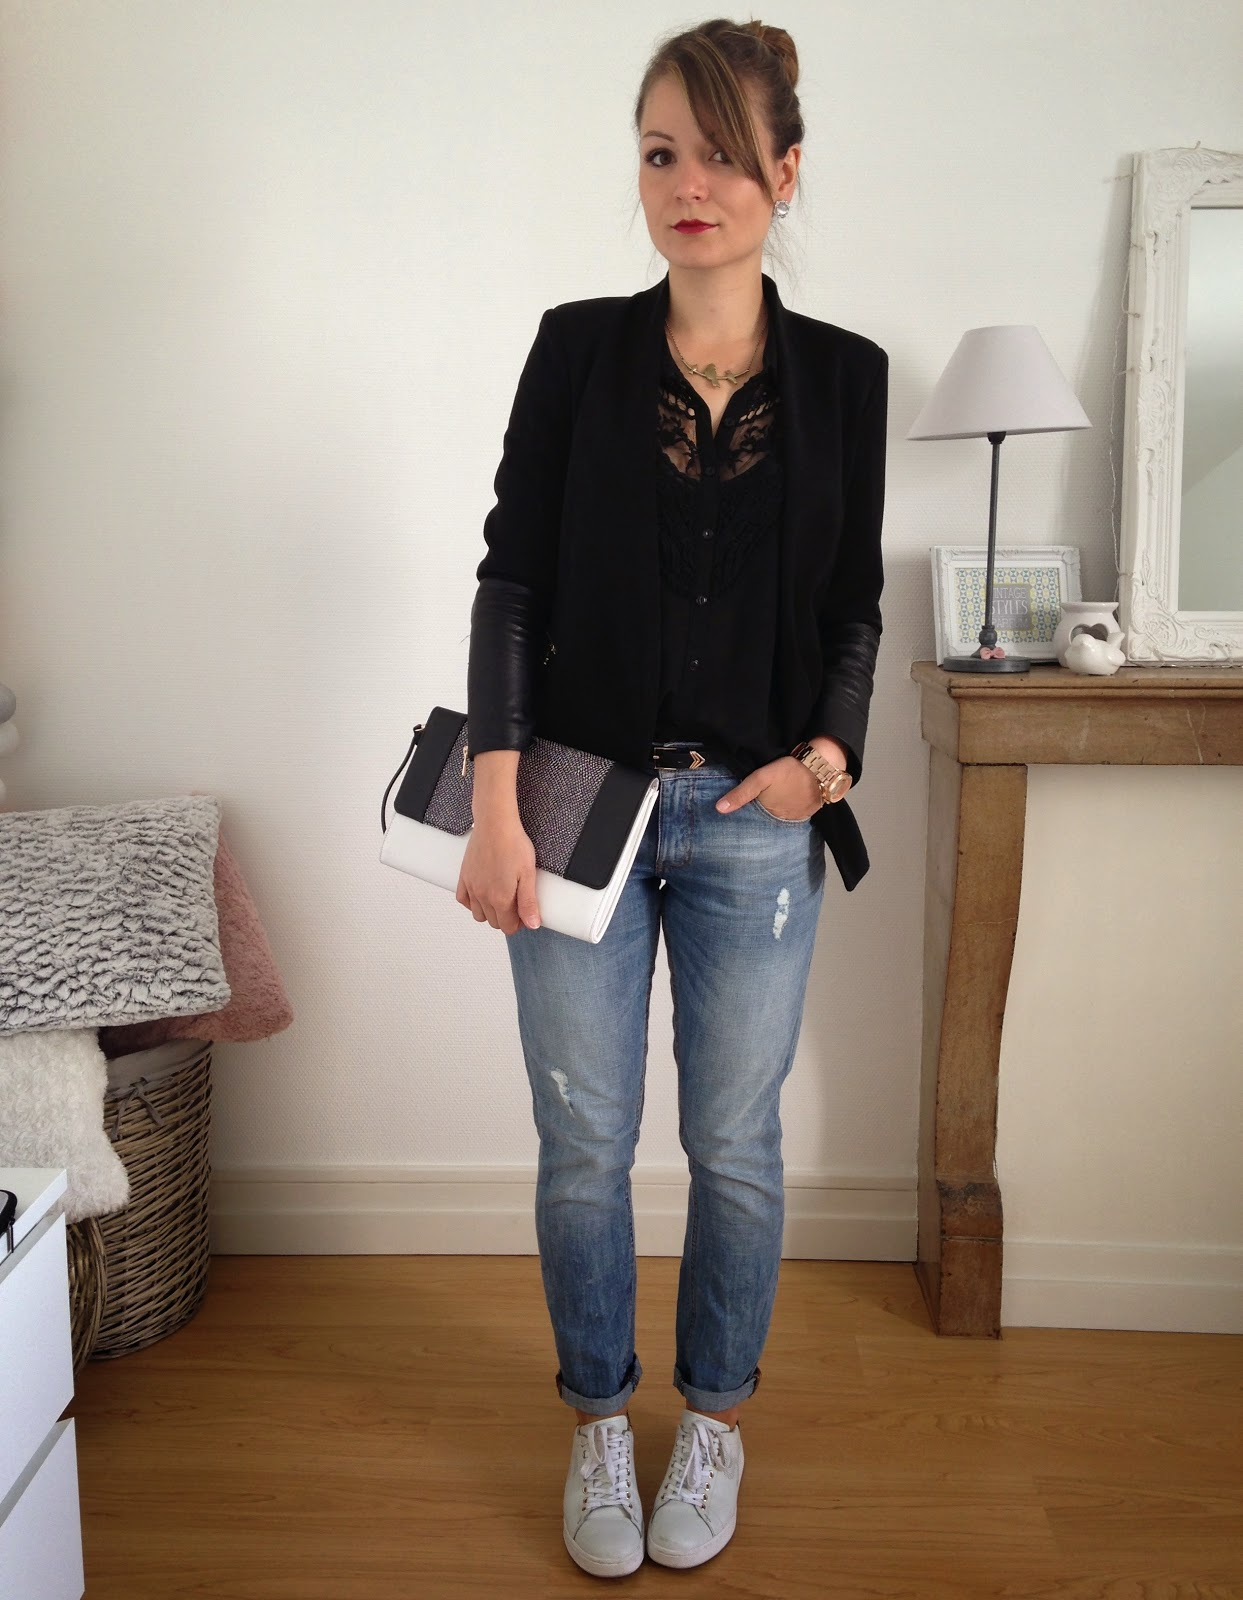 Confortable boyfriend pauline dress blog mode lifestyle et d co besan on - Tenue chic et decontractee ...